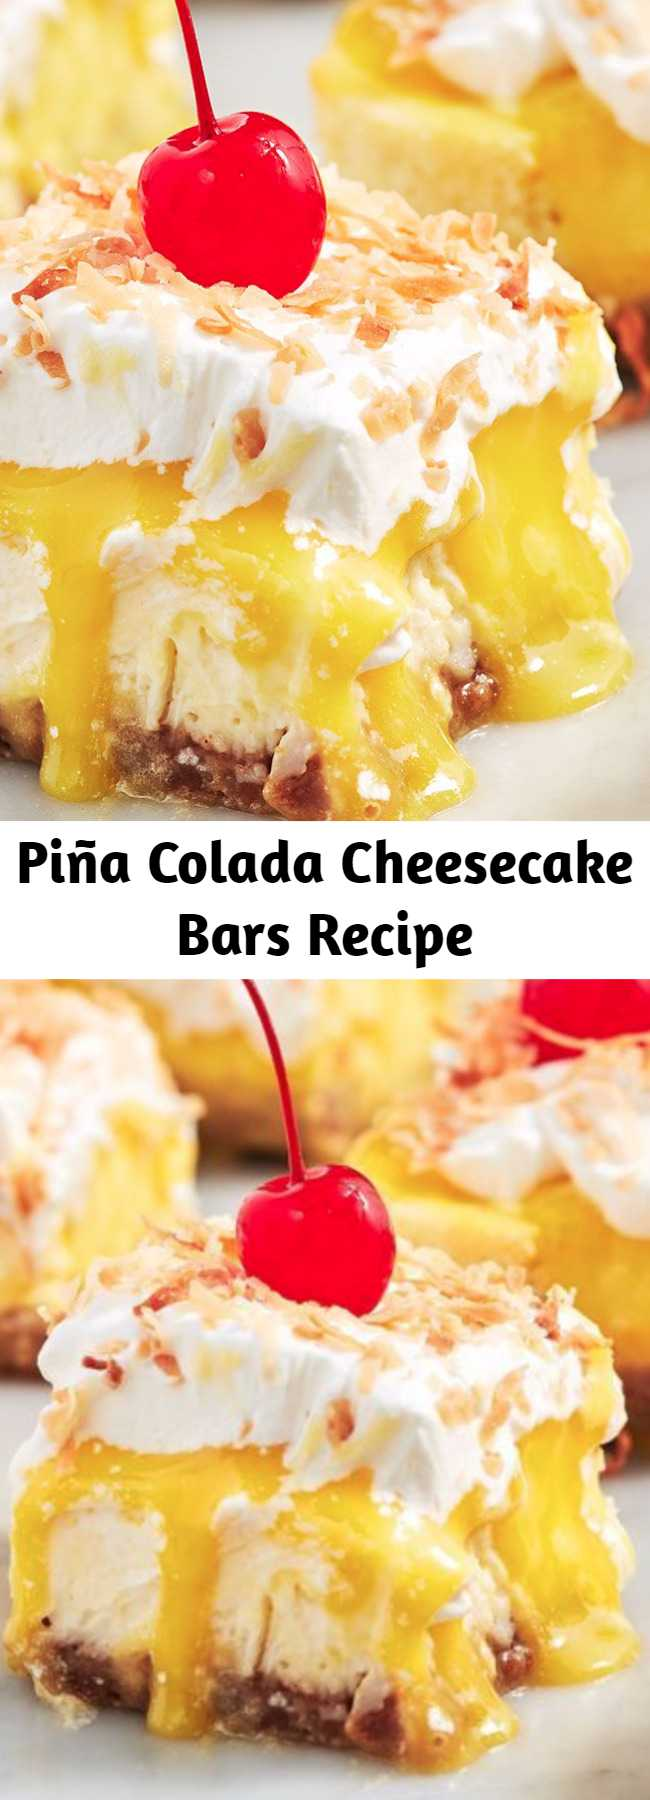 Piña Colada Cheesecake Bars Recipe - The pineapple curd on these bars is TOO good. One bite will transport you to the beach, piña colada in hand. 😎